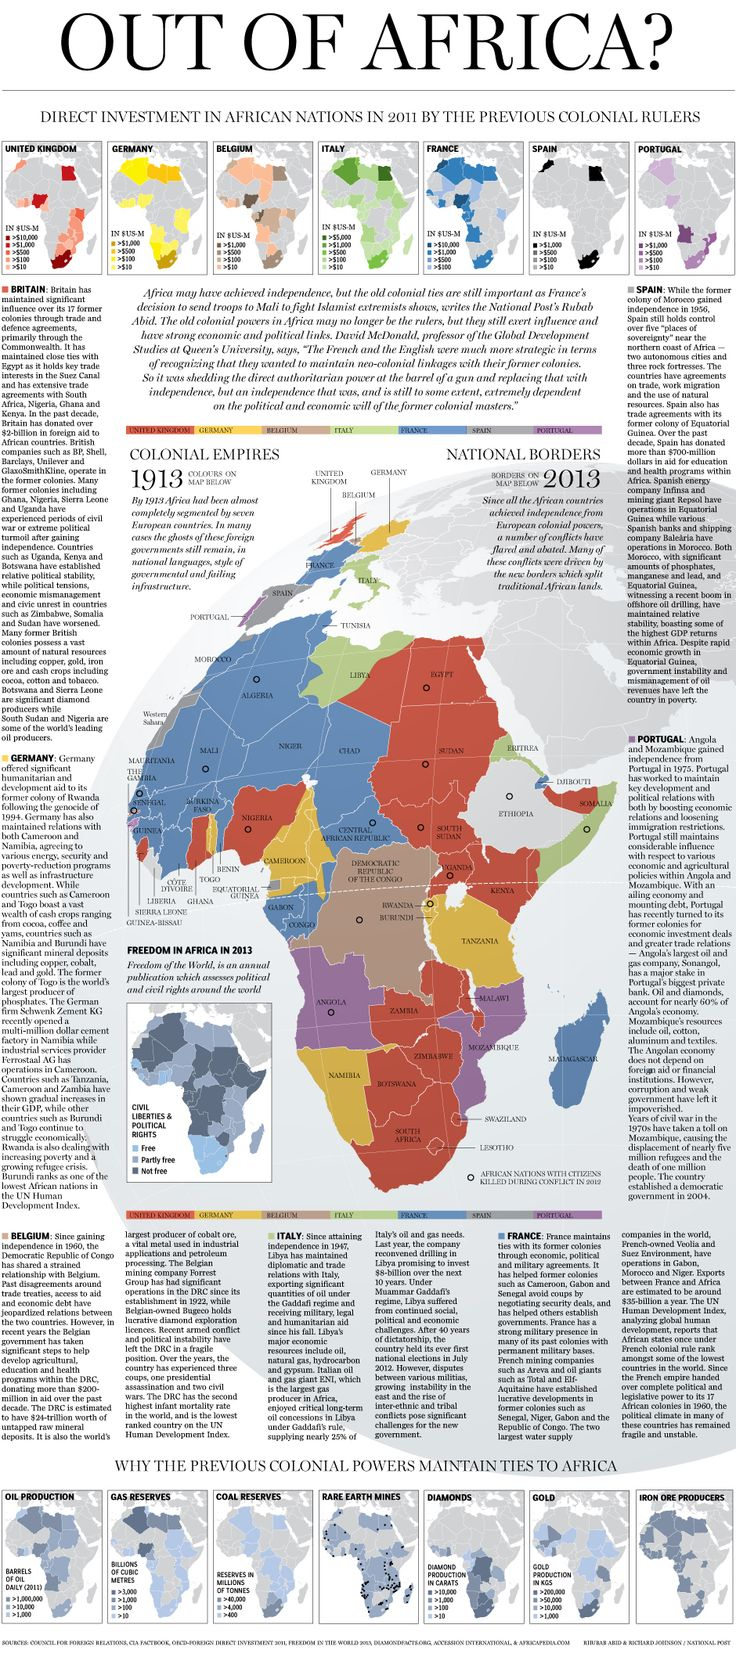 """Out of Africa?"" - Did the Colonial Powers Ever Really Leave? 